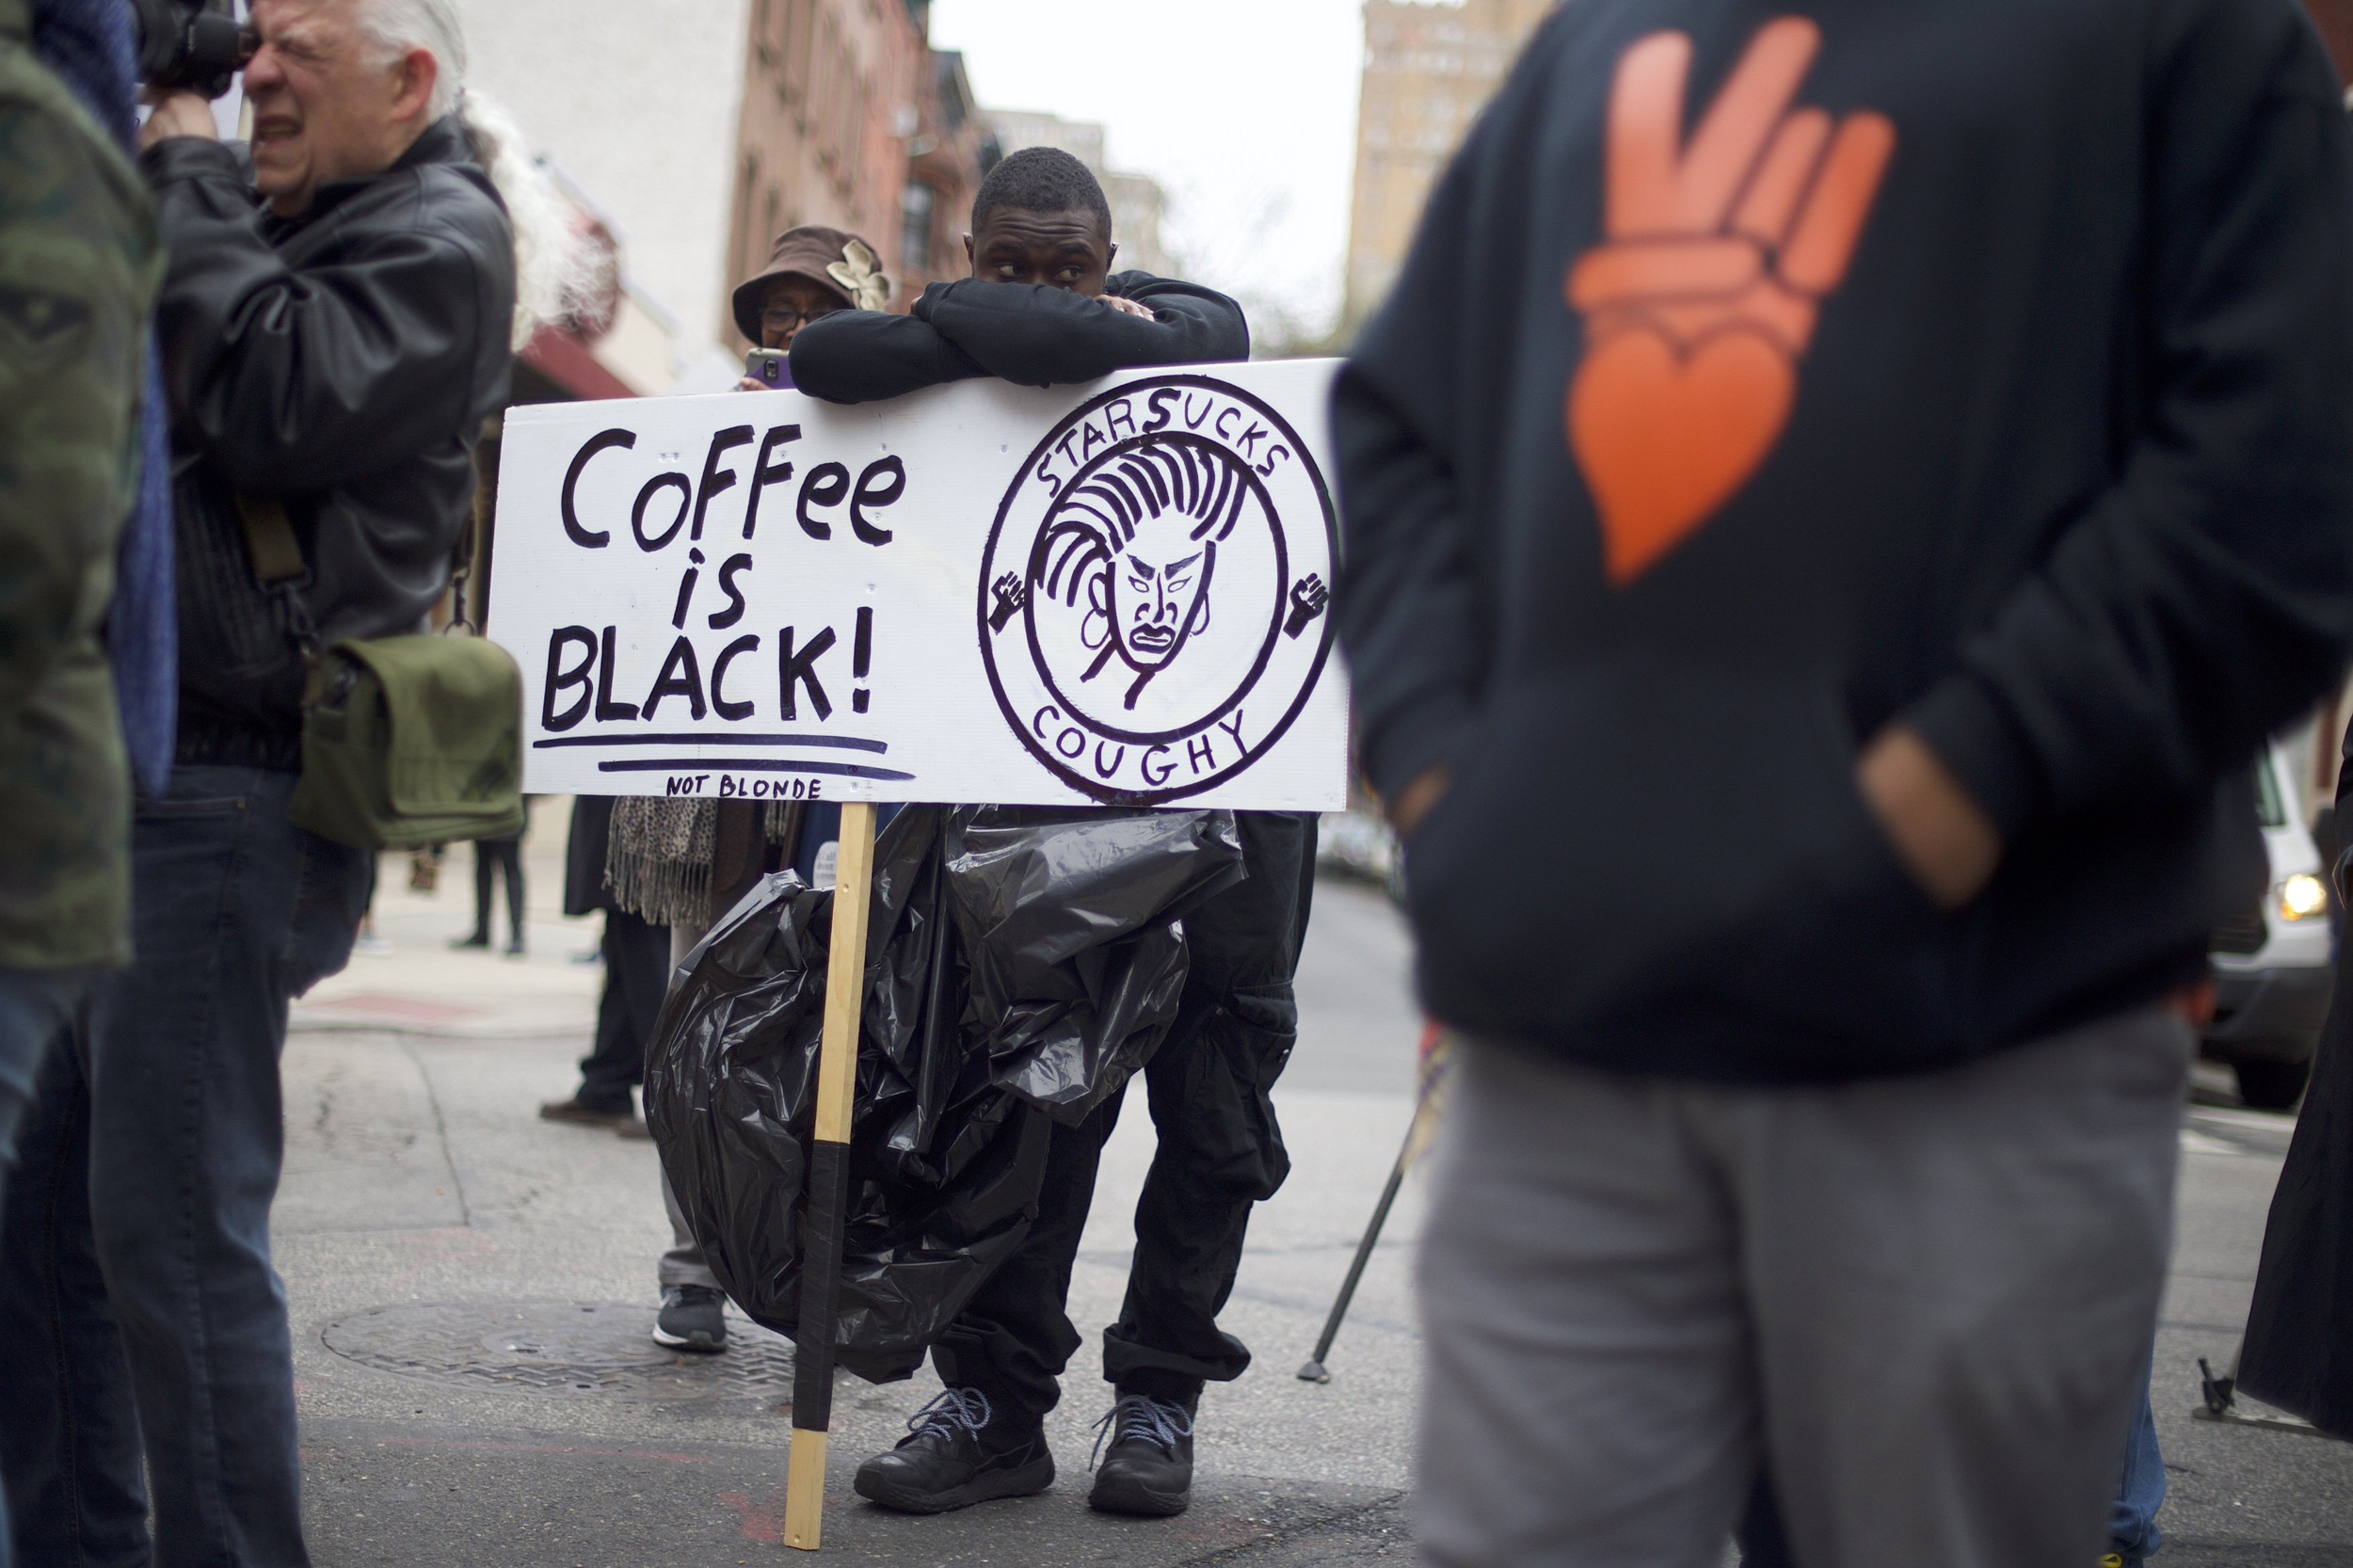 Protests-follow-outrage-after-two-black-men-arrested-at-Philly-Starbucks